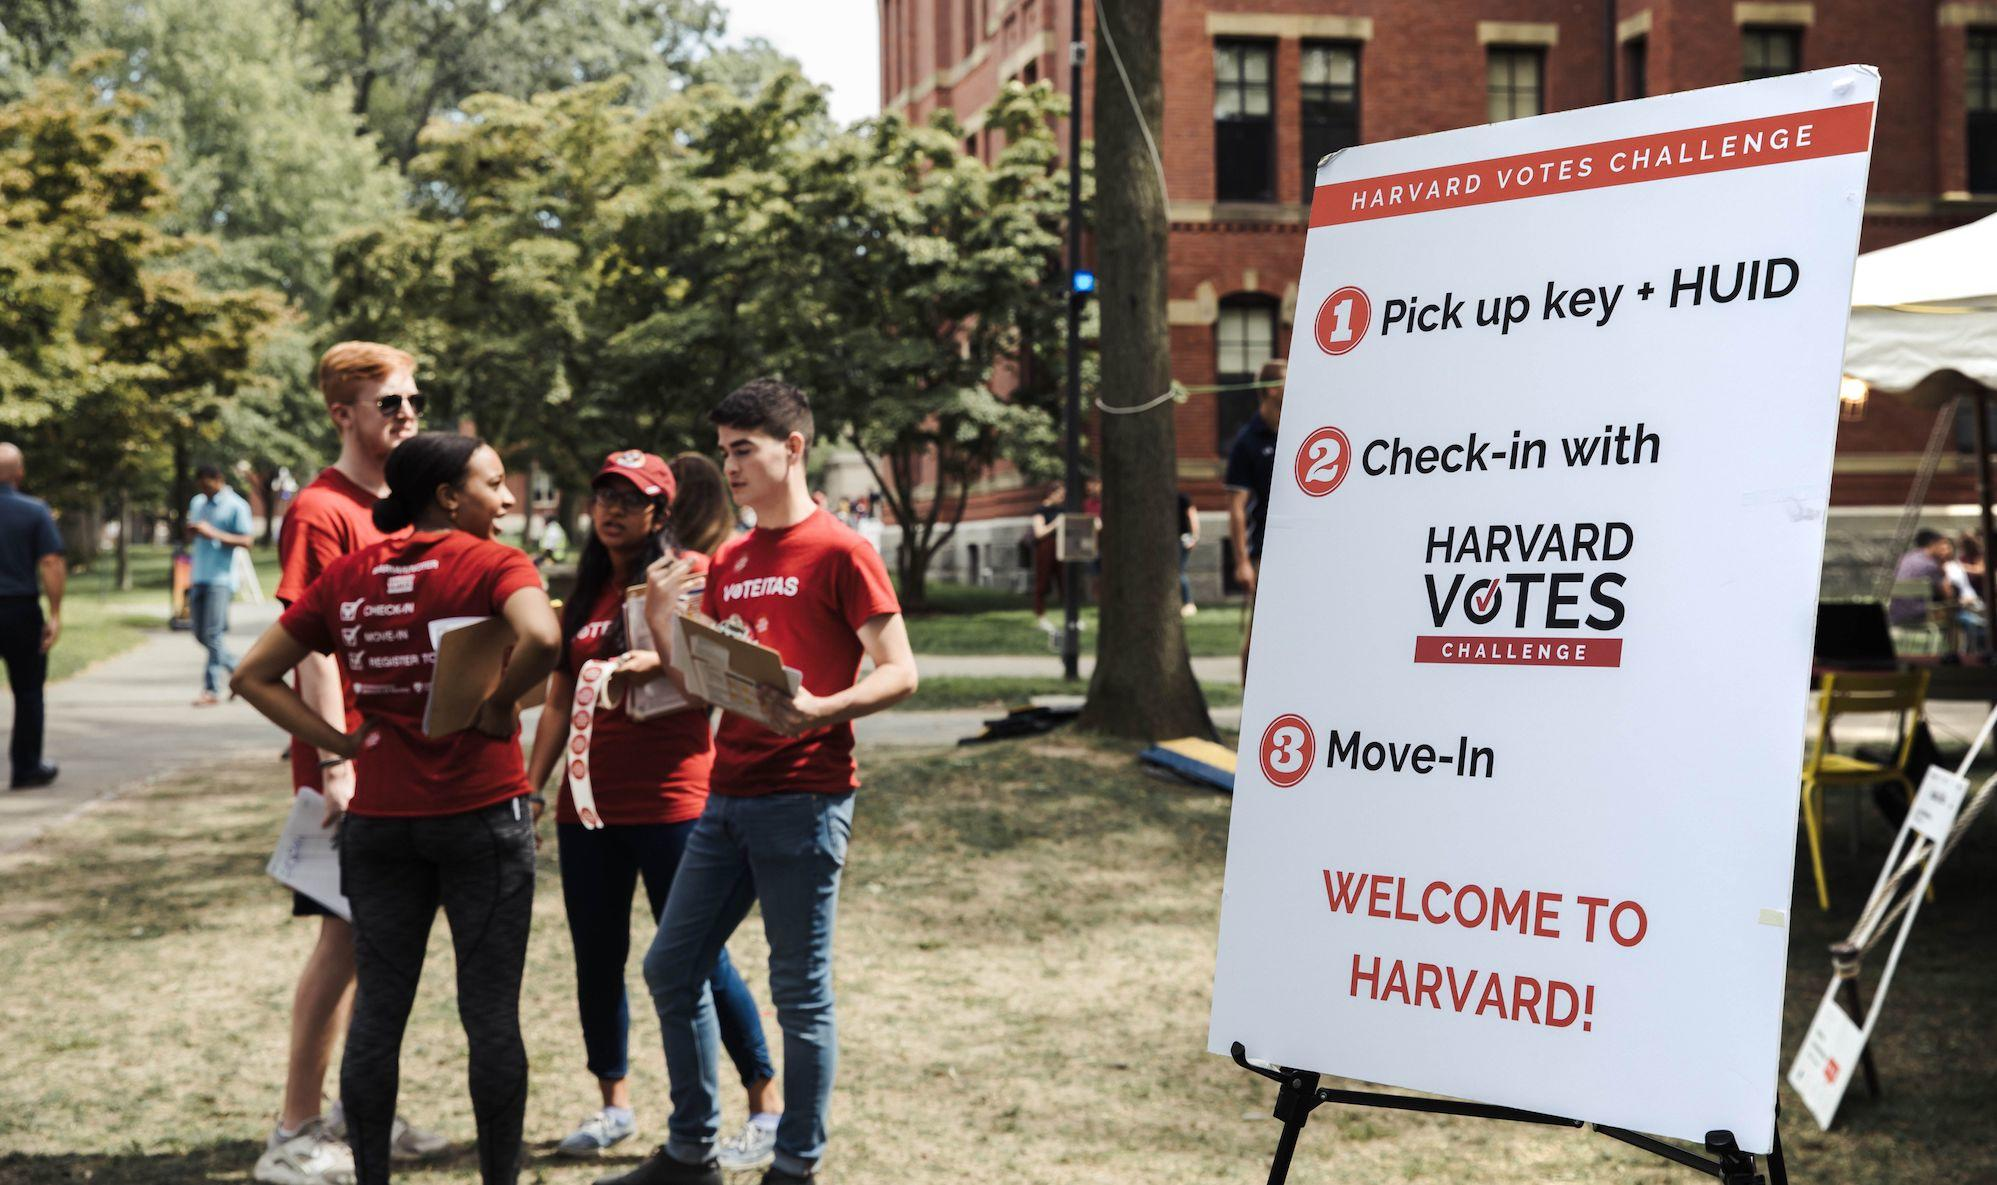 Sign in Harvard Yard directs students to register to vote